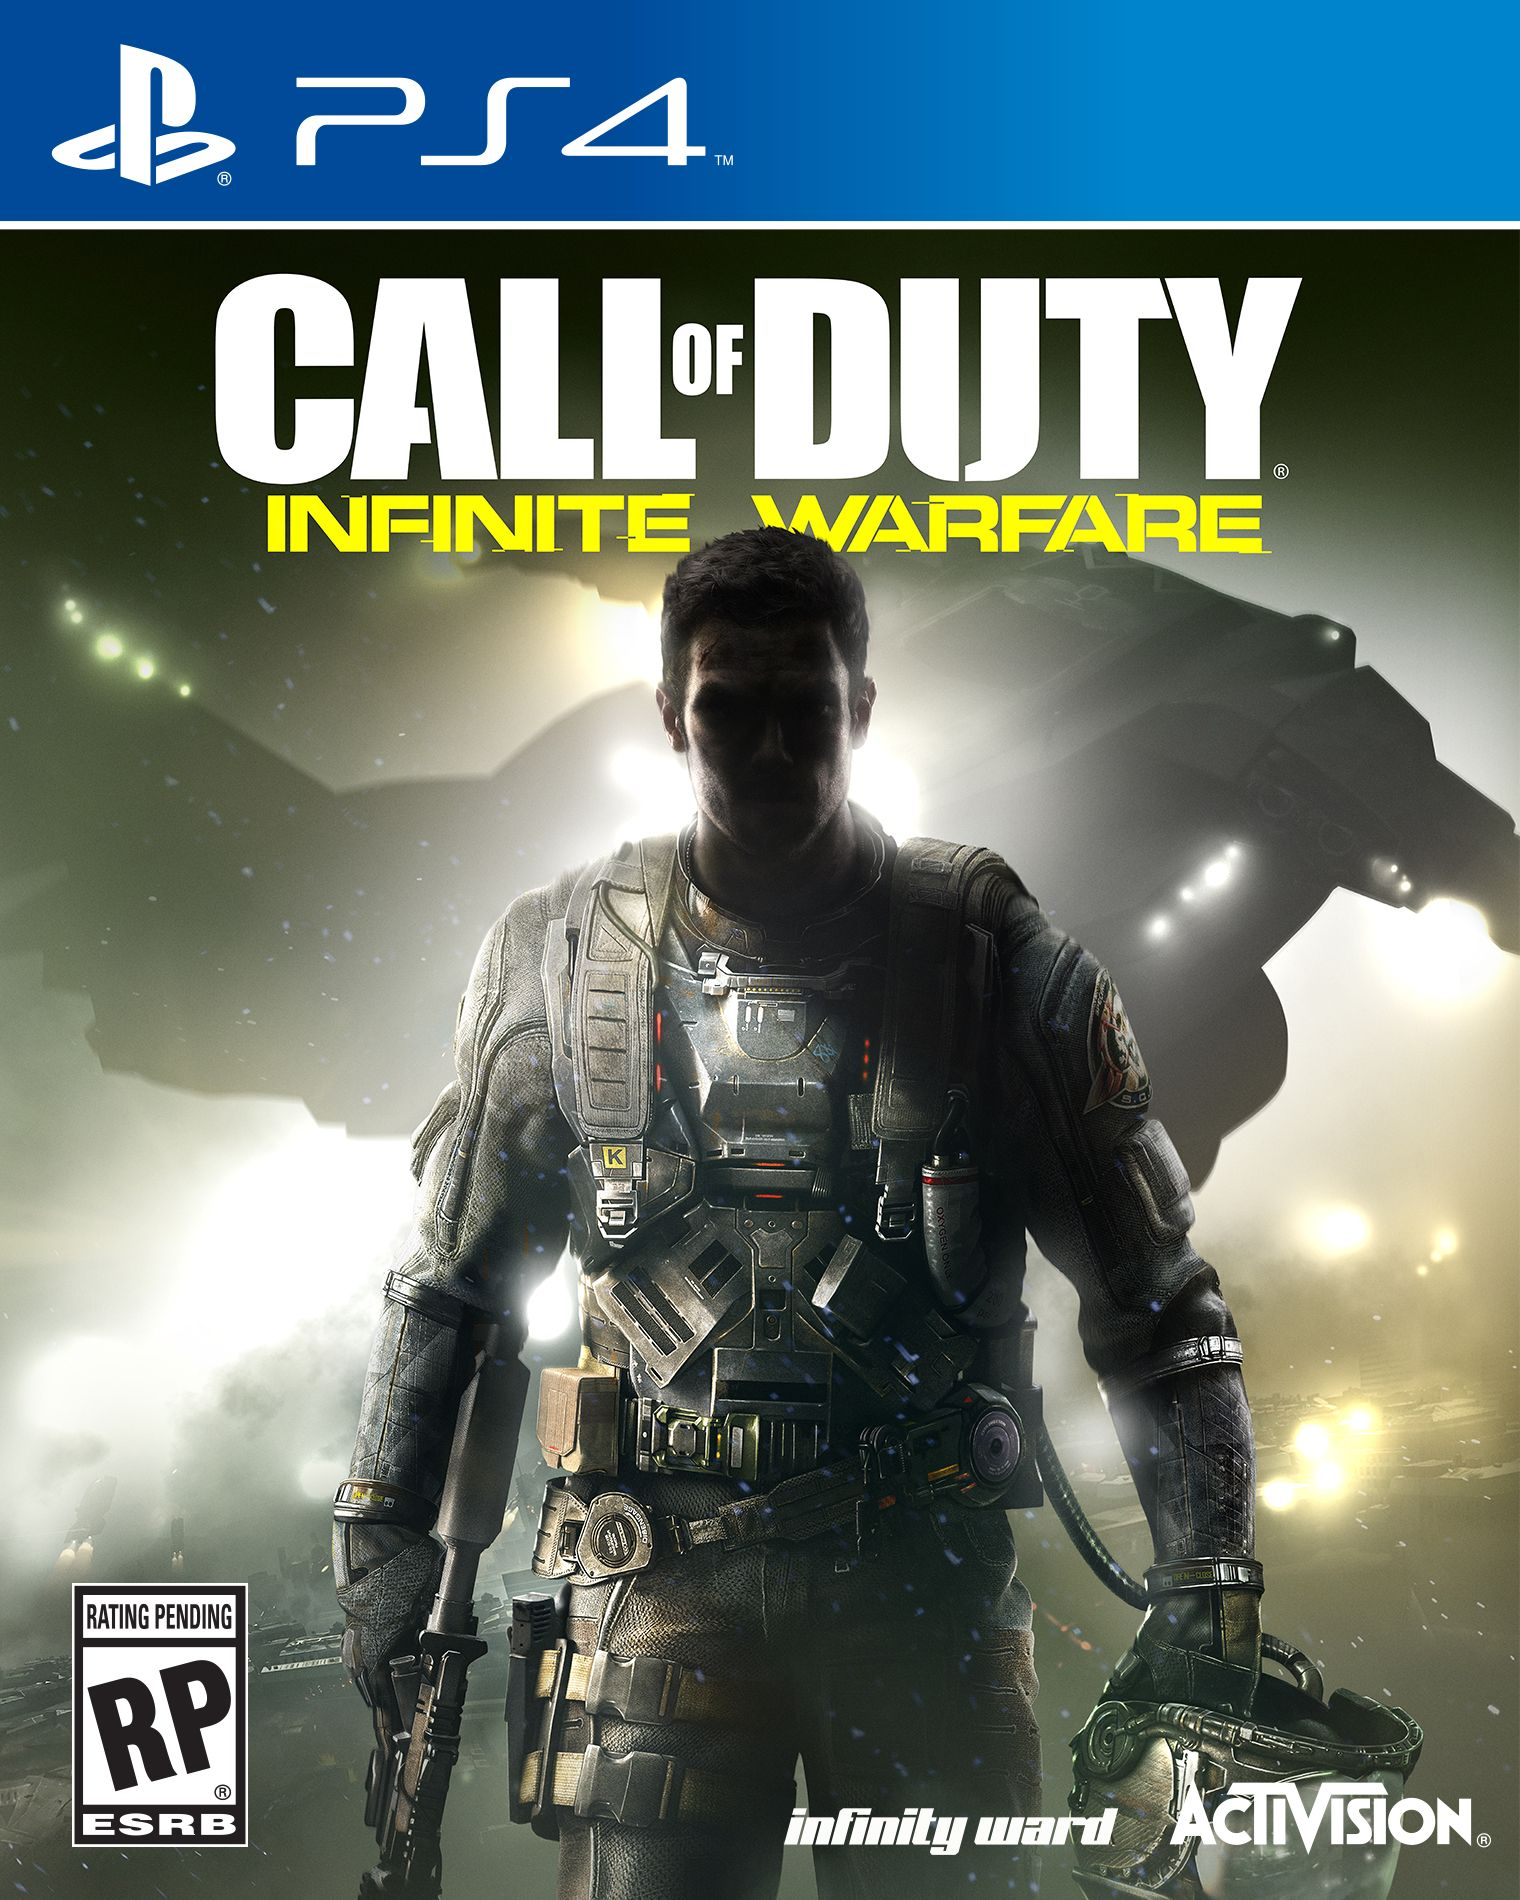 COD-Infinite-Warfare_Reveal_Packshots_PS4